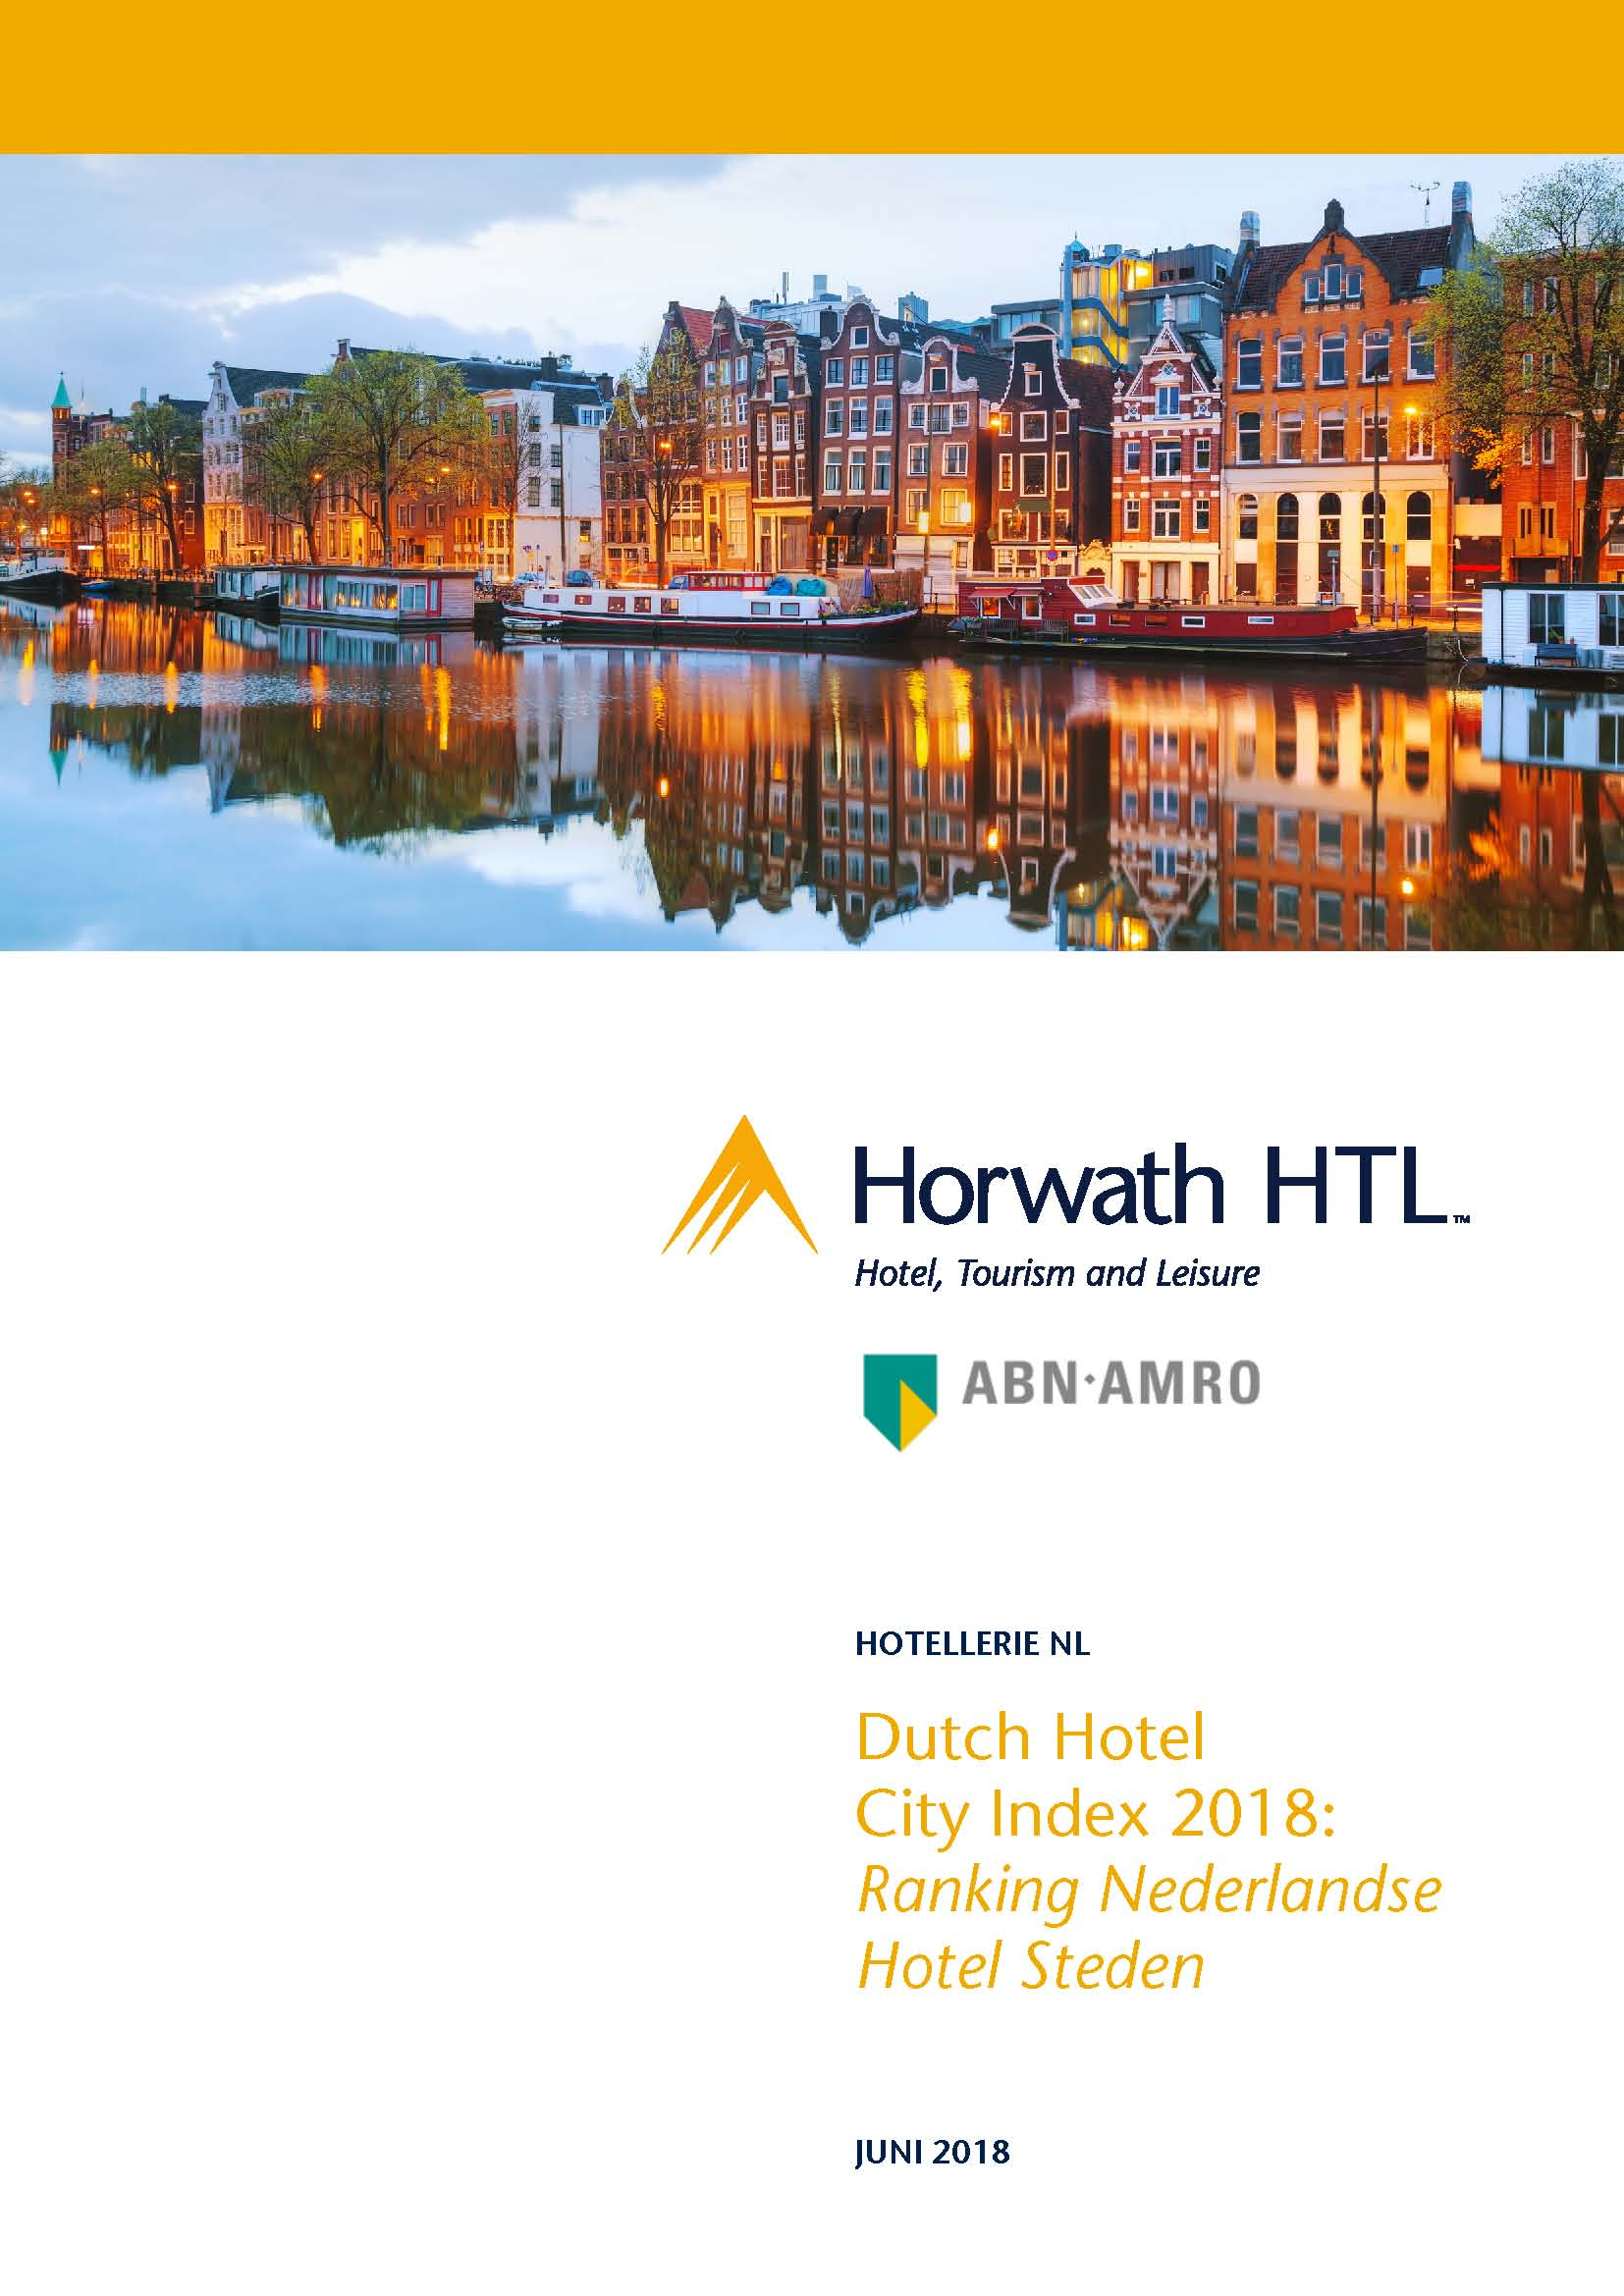 Rapport: Dutch Hotel City Index 2018